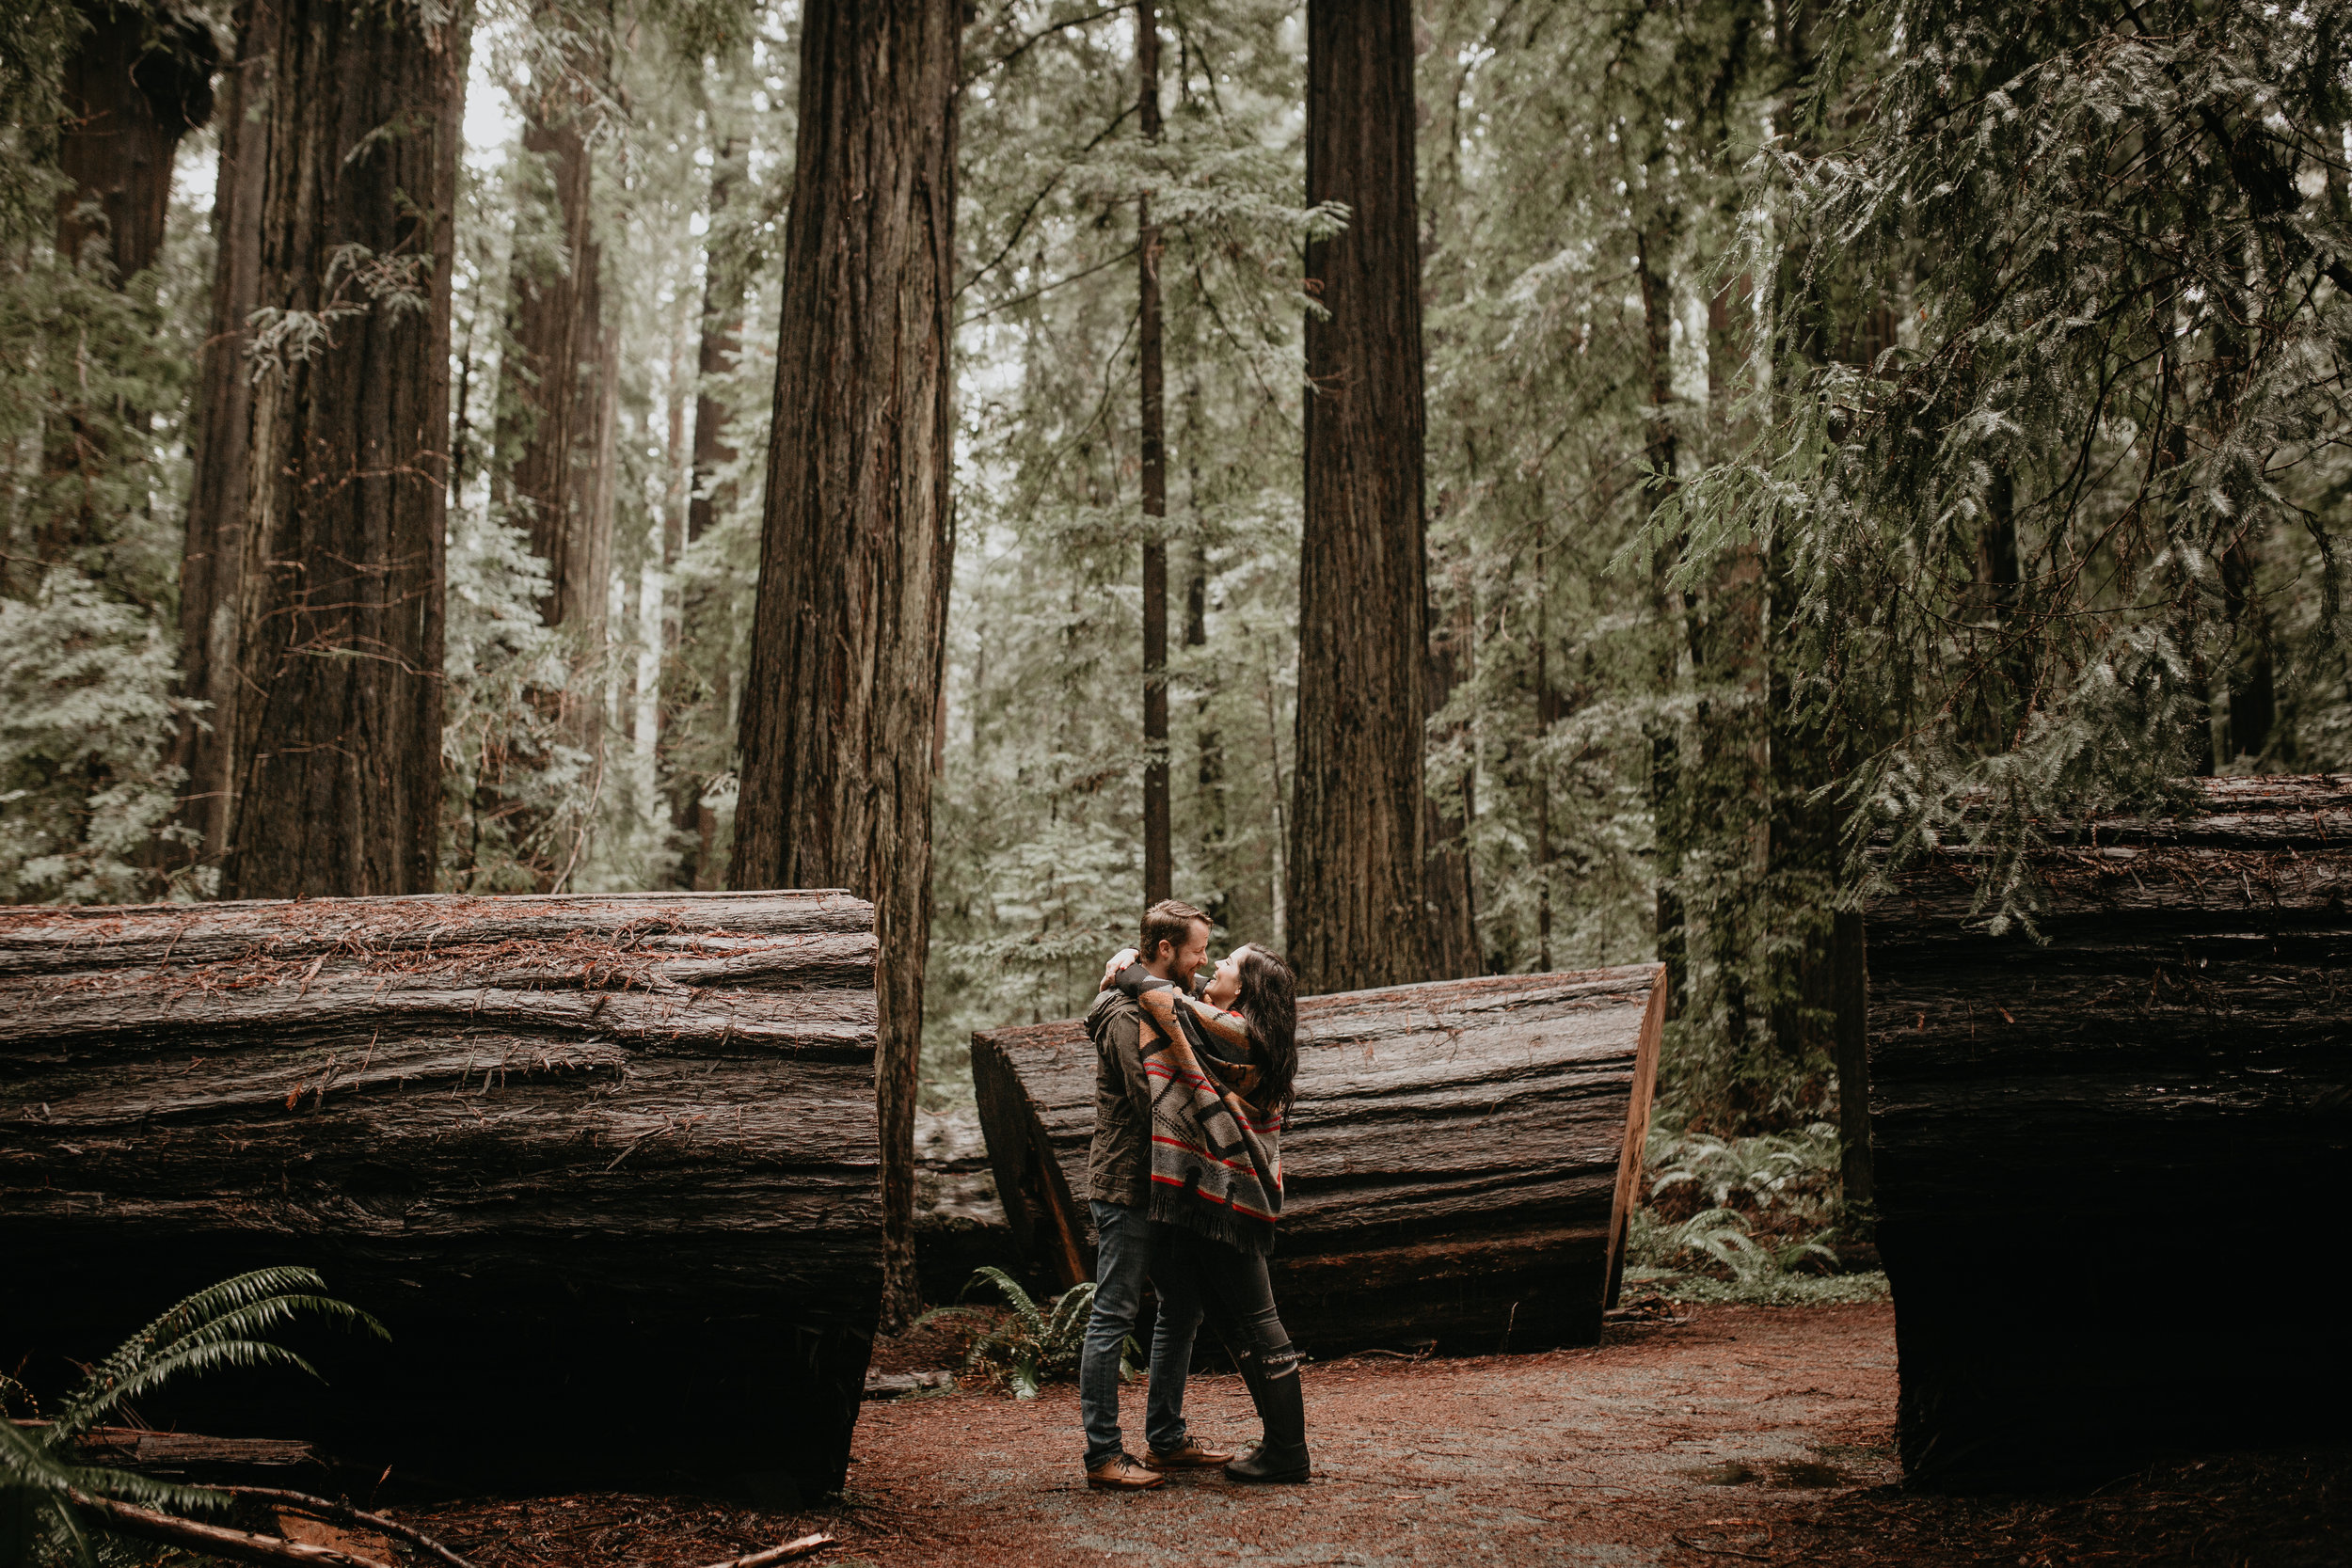 nicole-daacke-photography-redwoods-national-park-forest-rainy-foggy-adventure-engagement-session-humboldt-county-old-growth-redwood-tree-elopement-intimate-wedding-photographer-17.jpg